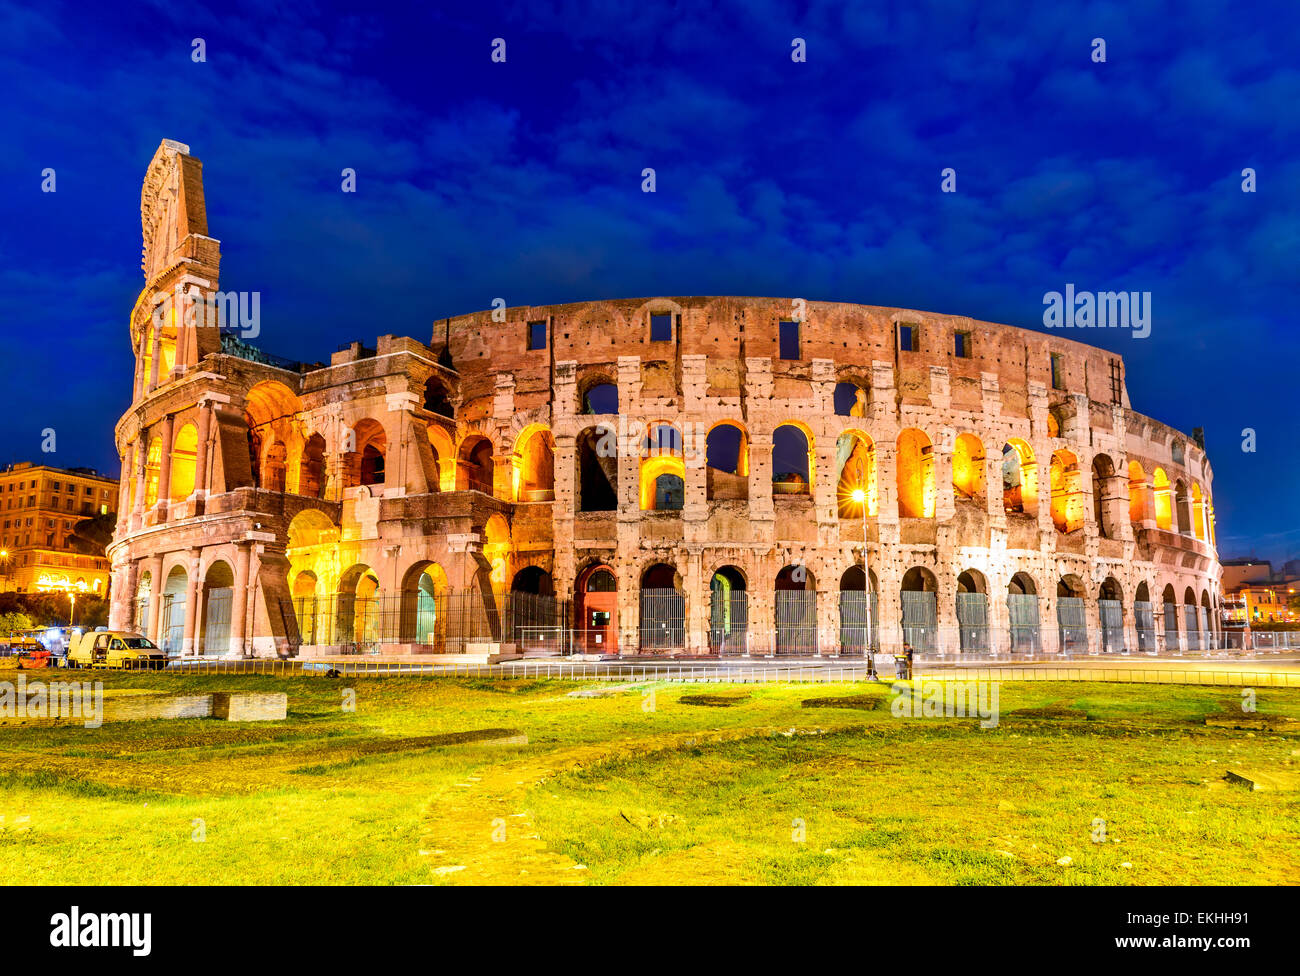 Colosseum, Rome, Italy. Twilight view of Colosseo in Rome, elliptical largest amphitheatre of Roman Empire ancient - Stock Image